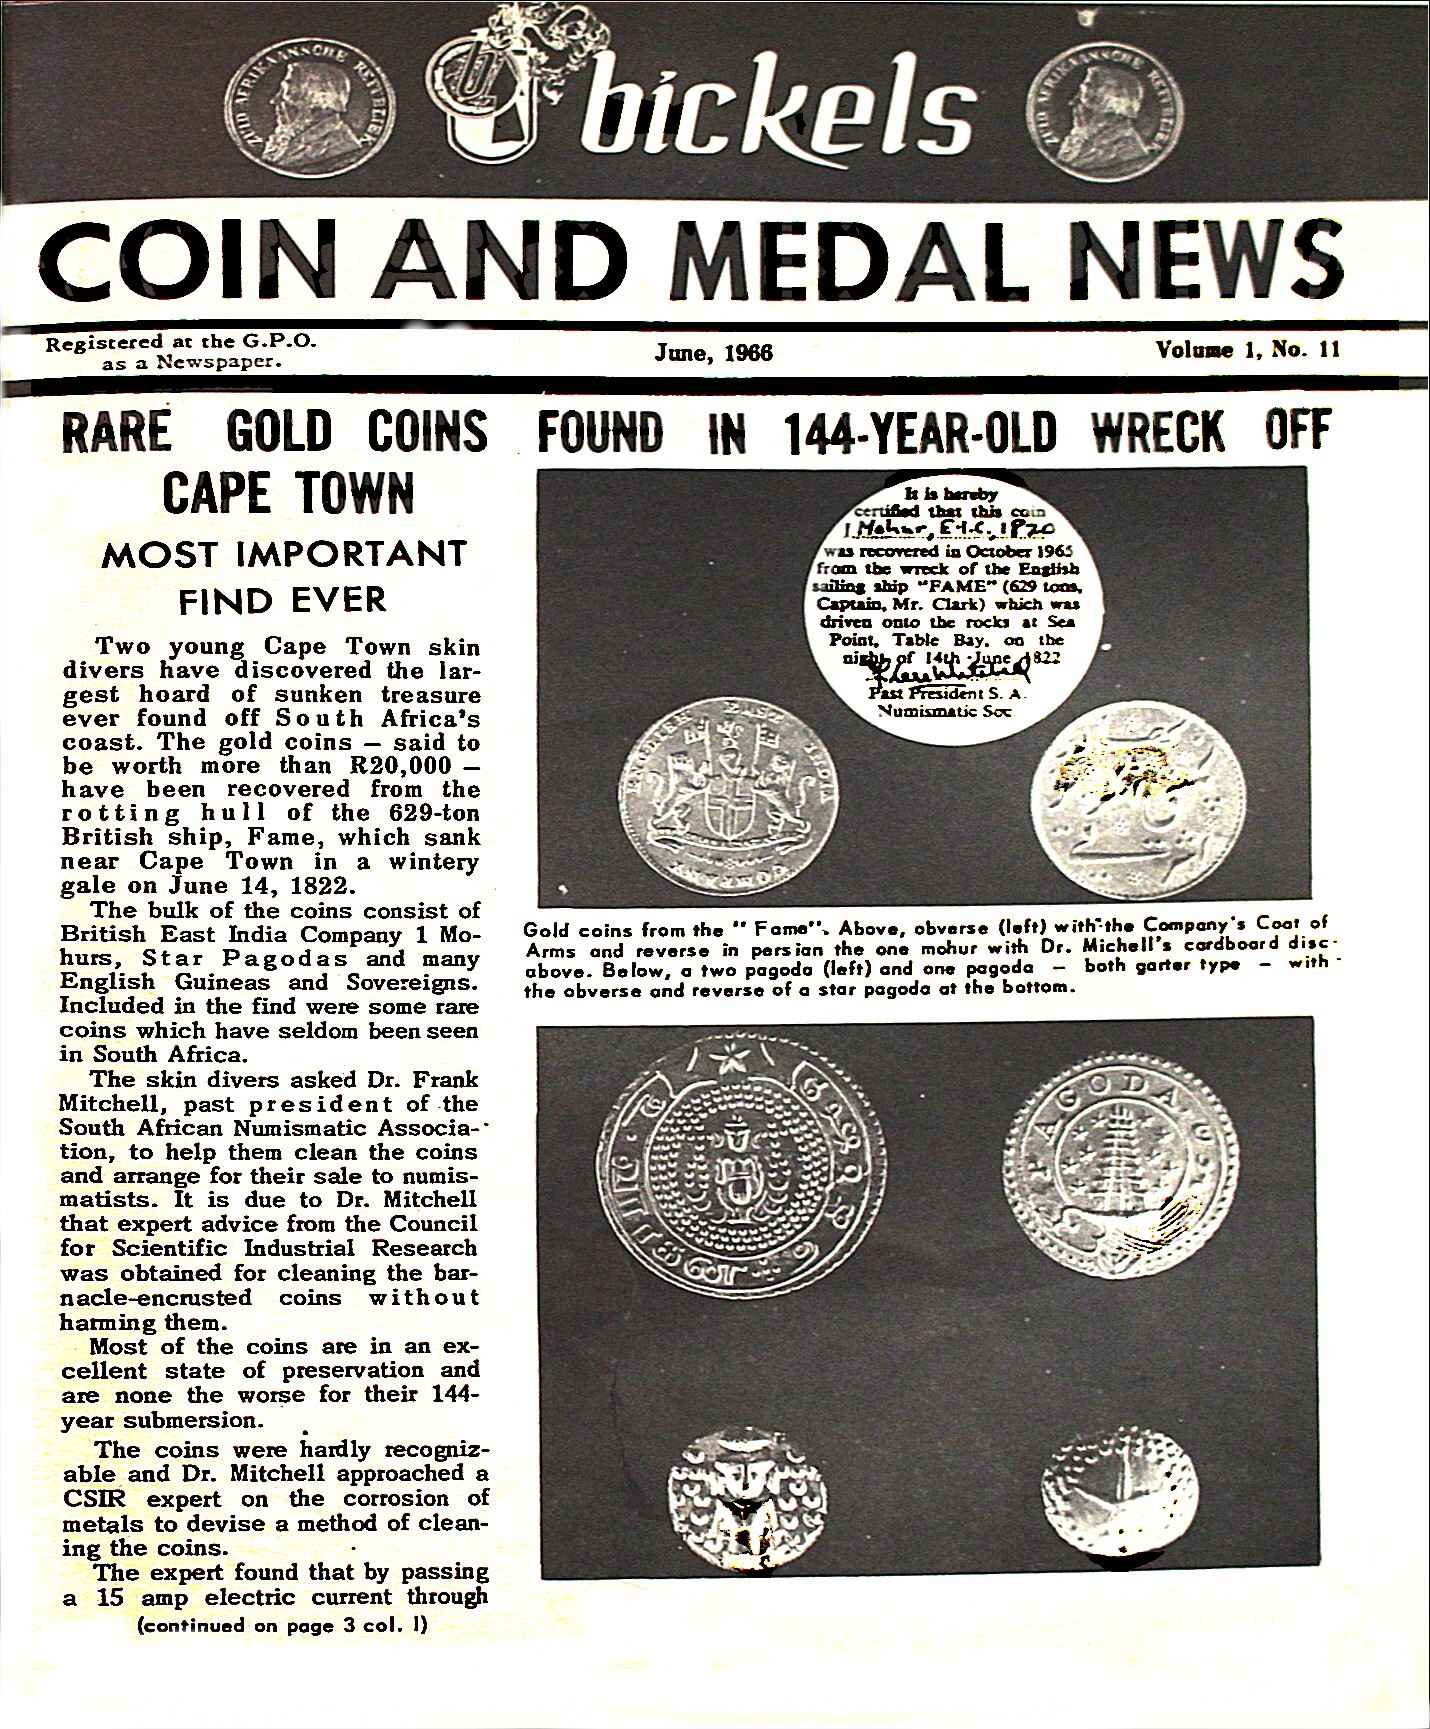 Bickels Coin & Medal News June 1966 Vol 1 No 11